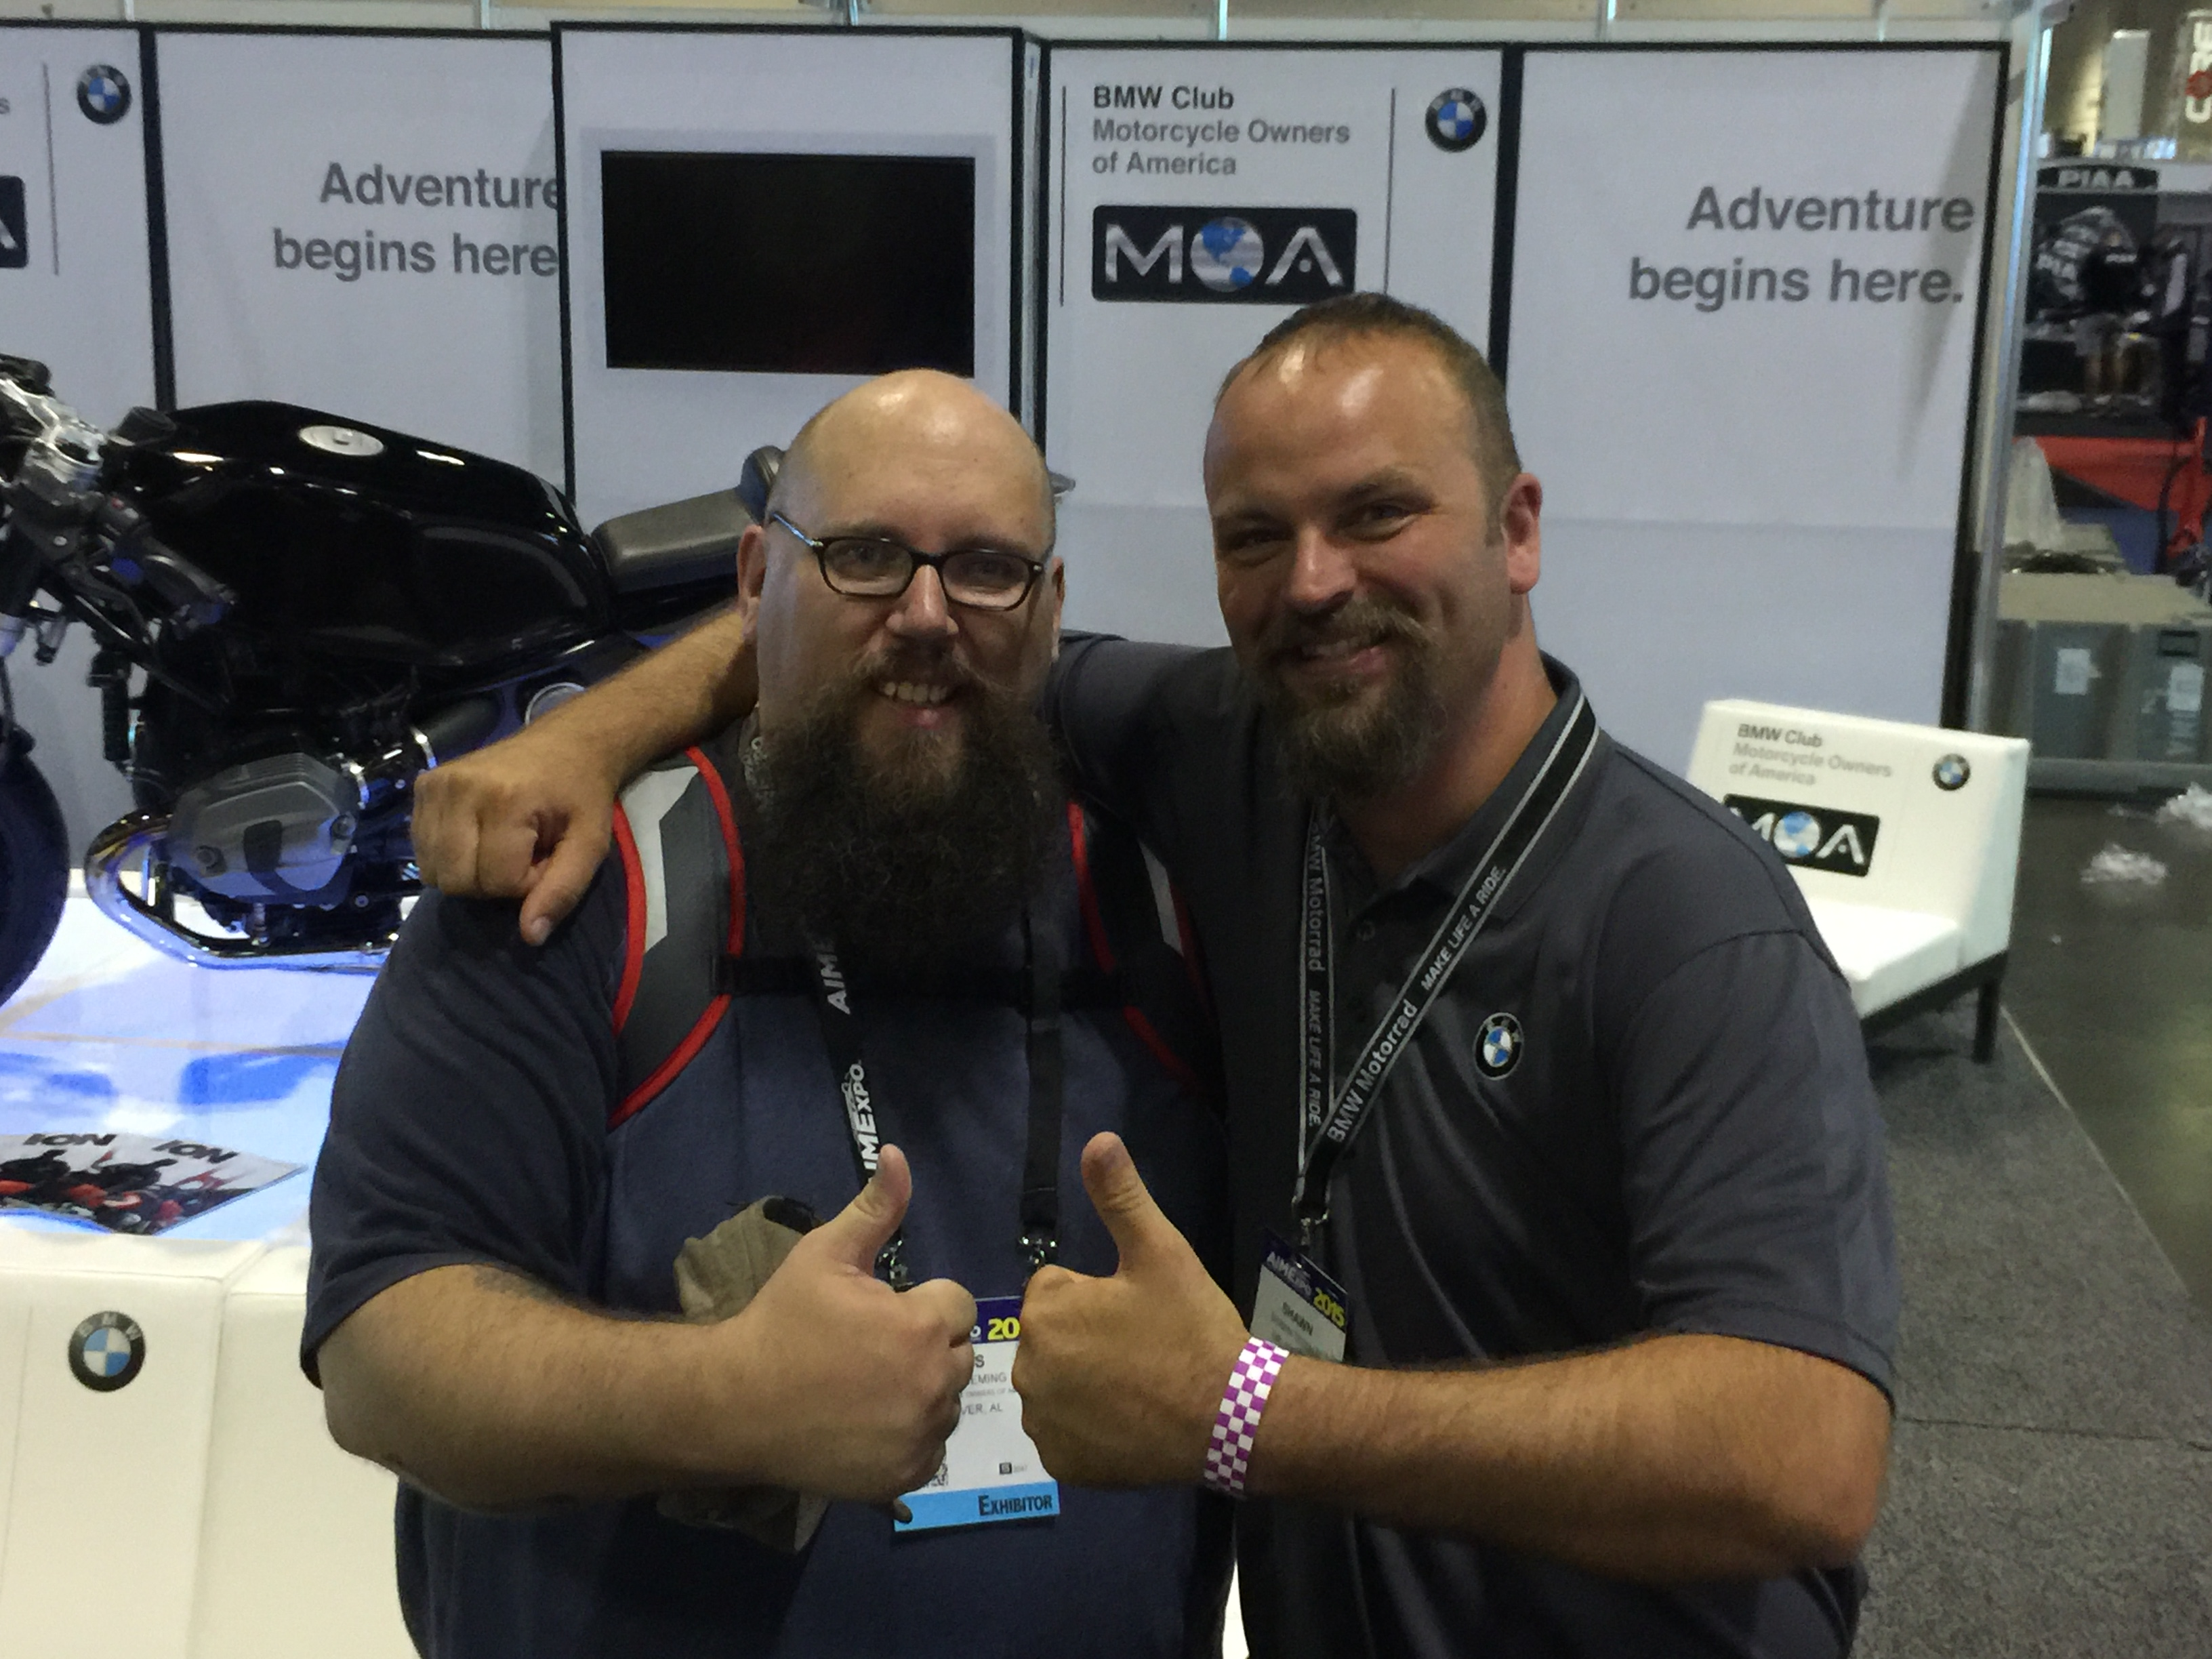 Wes Fleming (left) of BMW MOA and Shawn Thomas of RawHyde Adventures